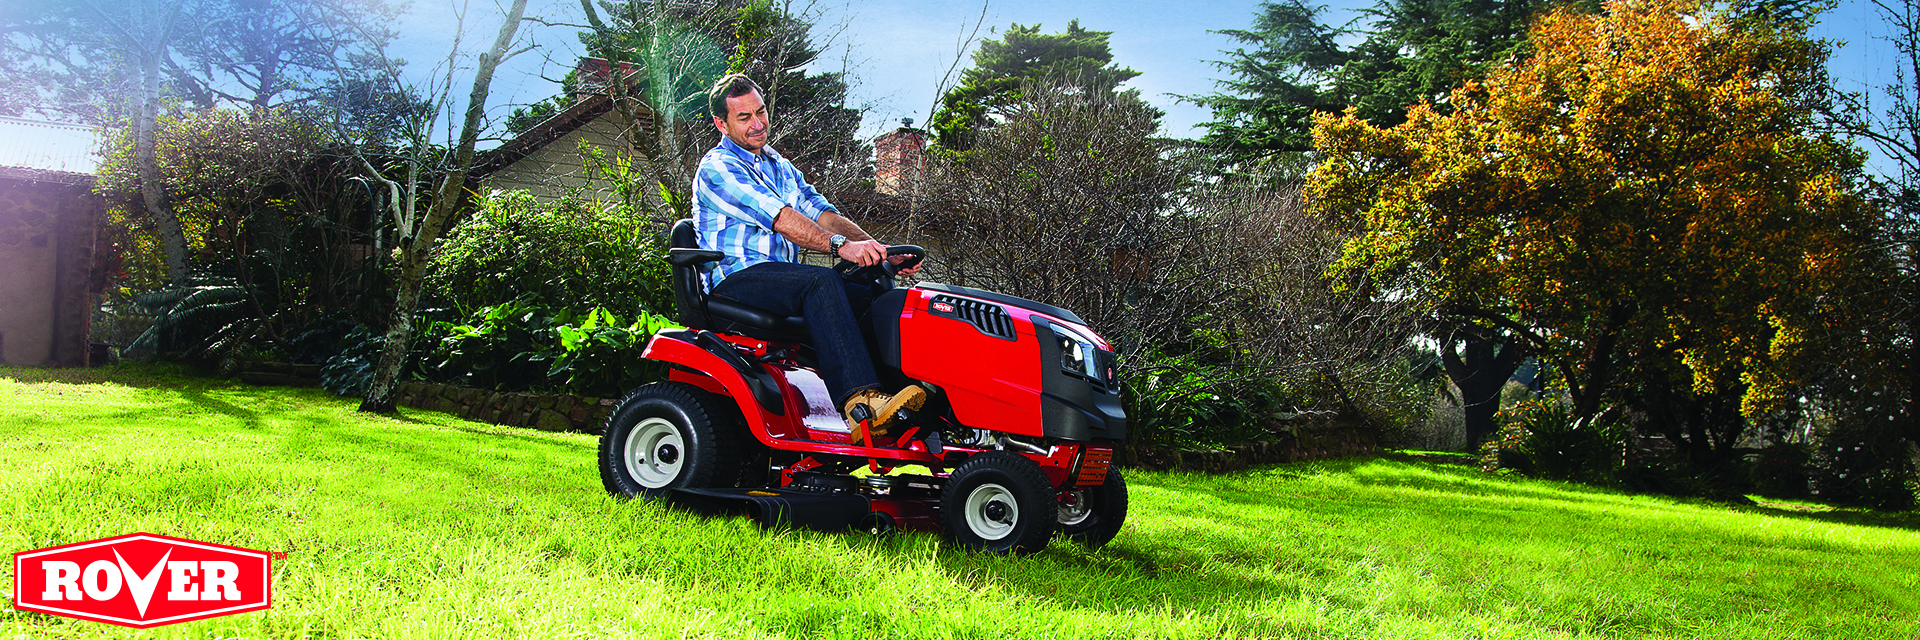 BIGGEST MOWER AND POWER EQUIPMENT DEALER IN BUNDABERG